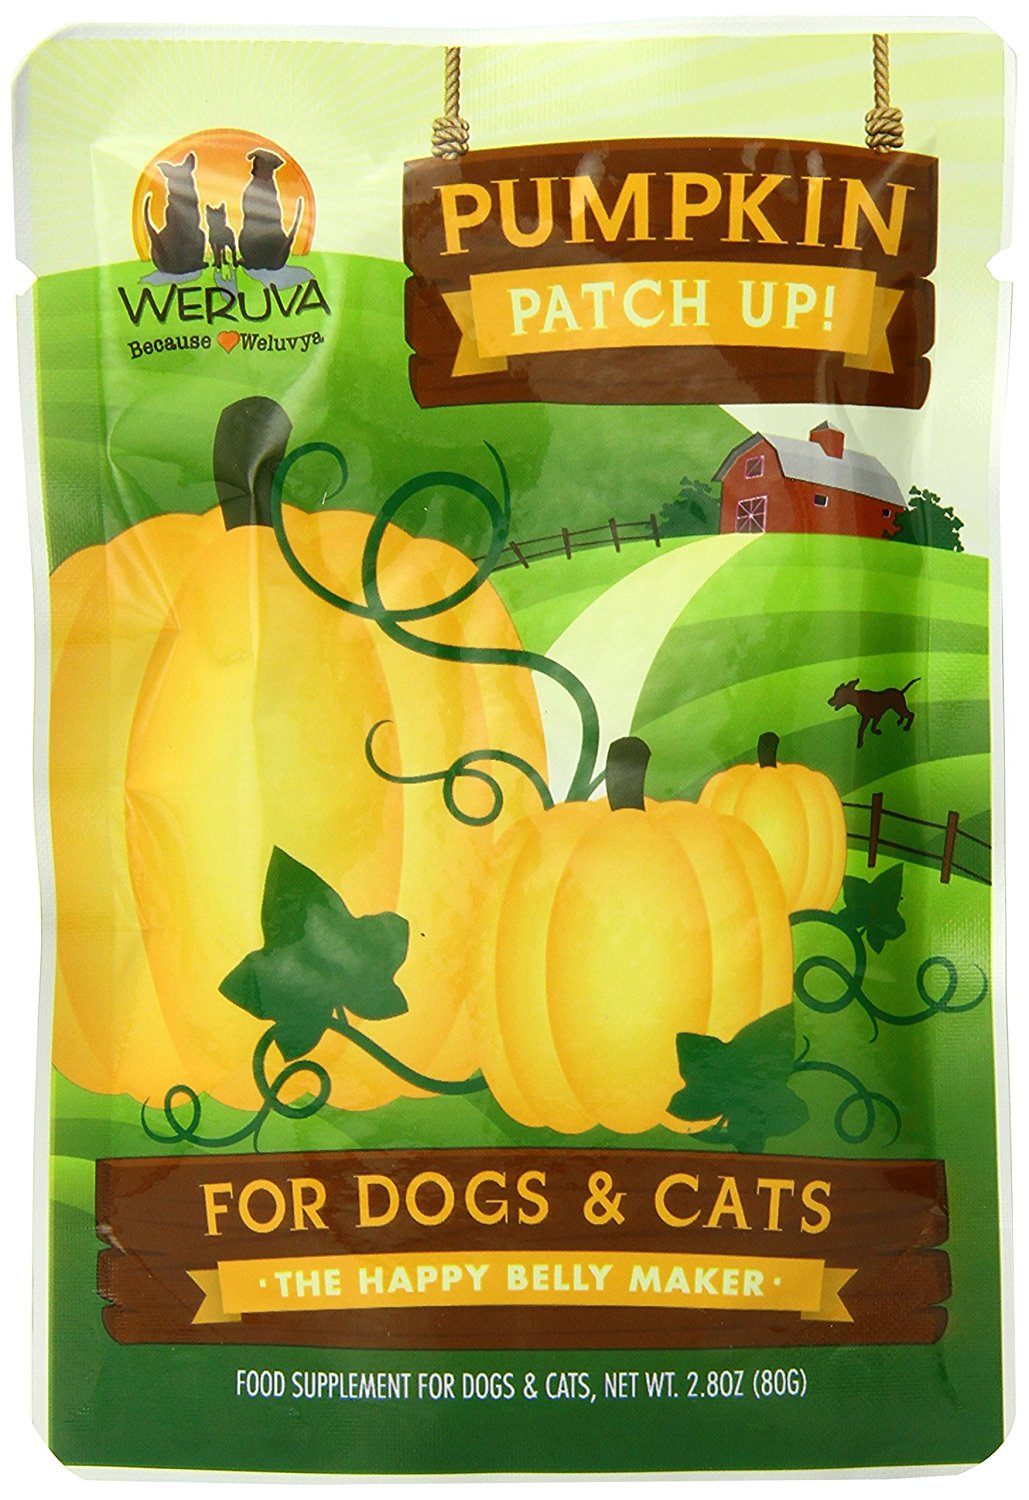 Pumpkin Patch Up! for Dogs and Cats